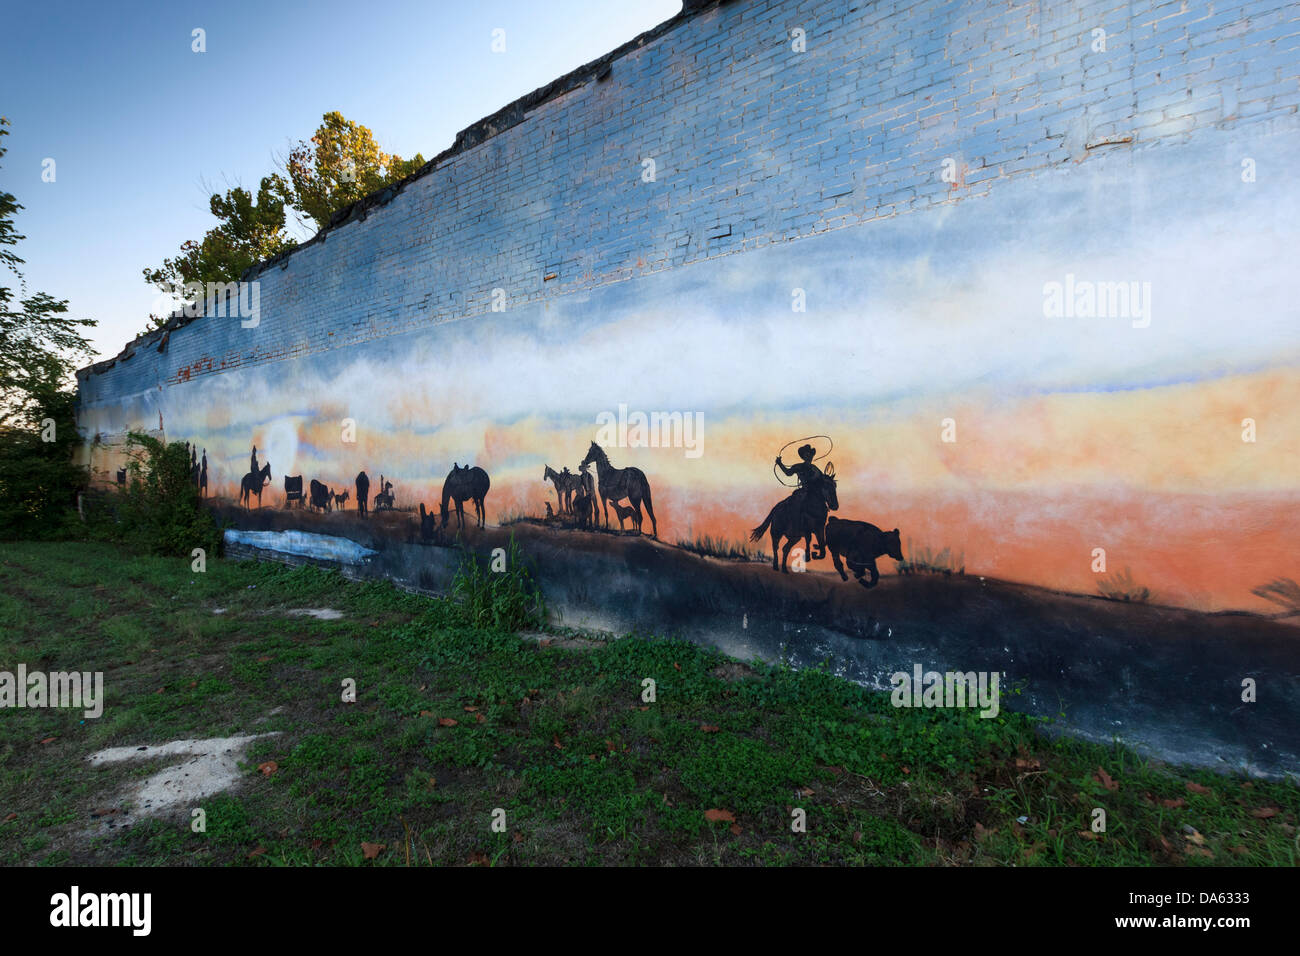 Bedias, cowboys, Kathy Harris, mural, Texas, USA, United States, America, western, riding - Stock Image